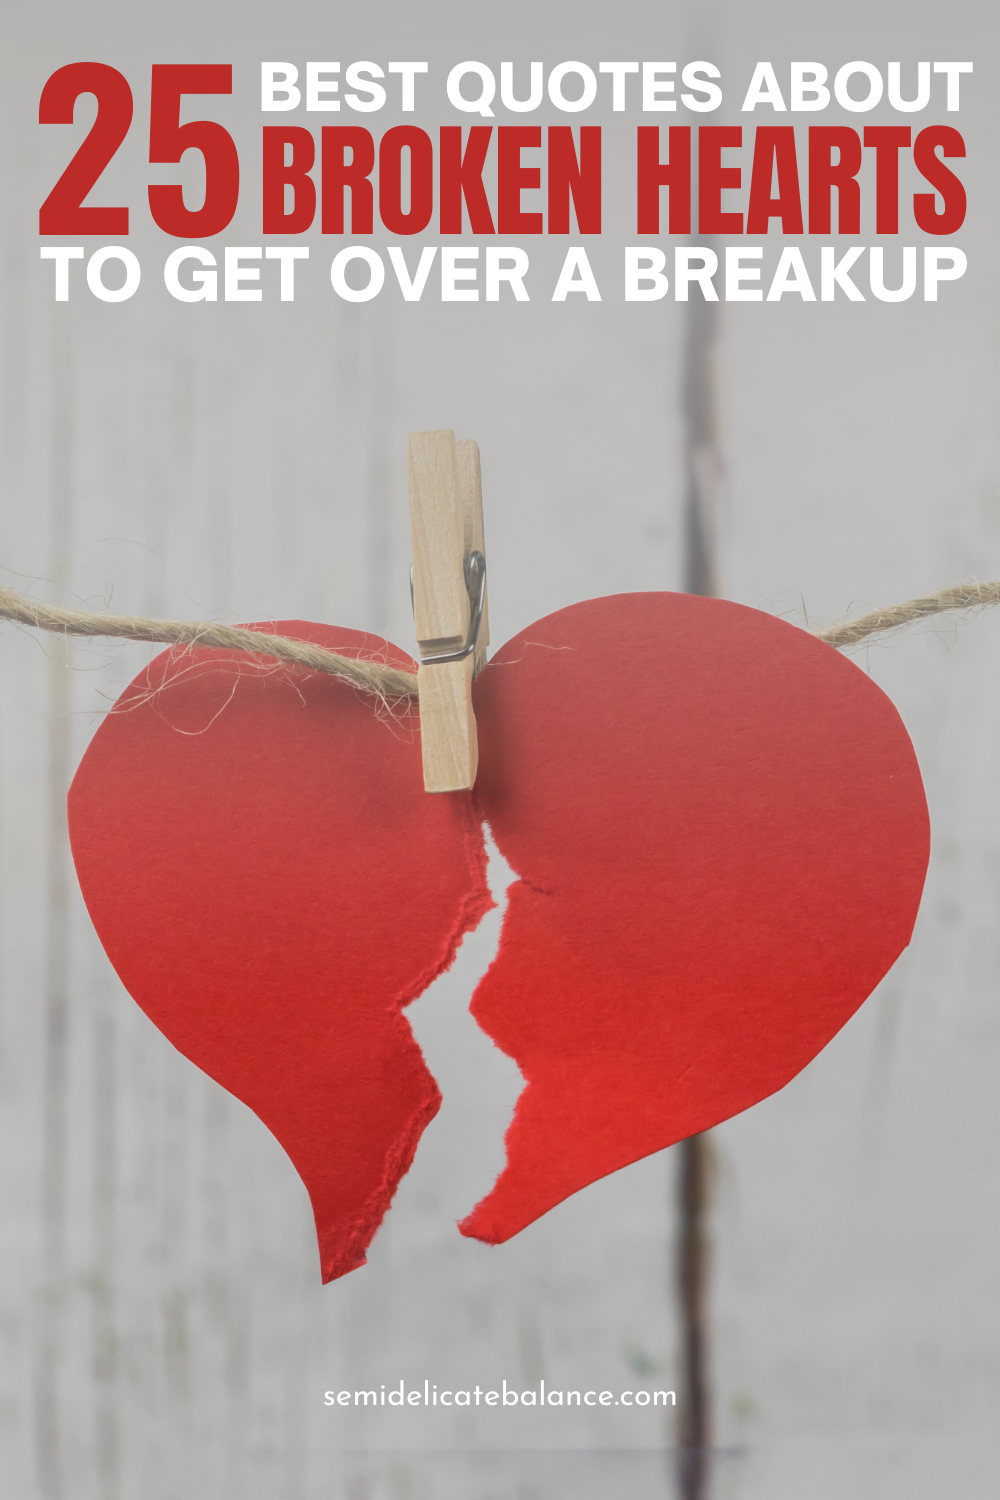 Best Quotes about Broken Hearts - Inspirational Words About Heartbreak #brokenheart #brokenhearts #breakup #breakups